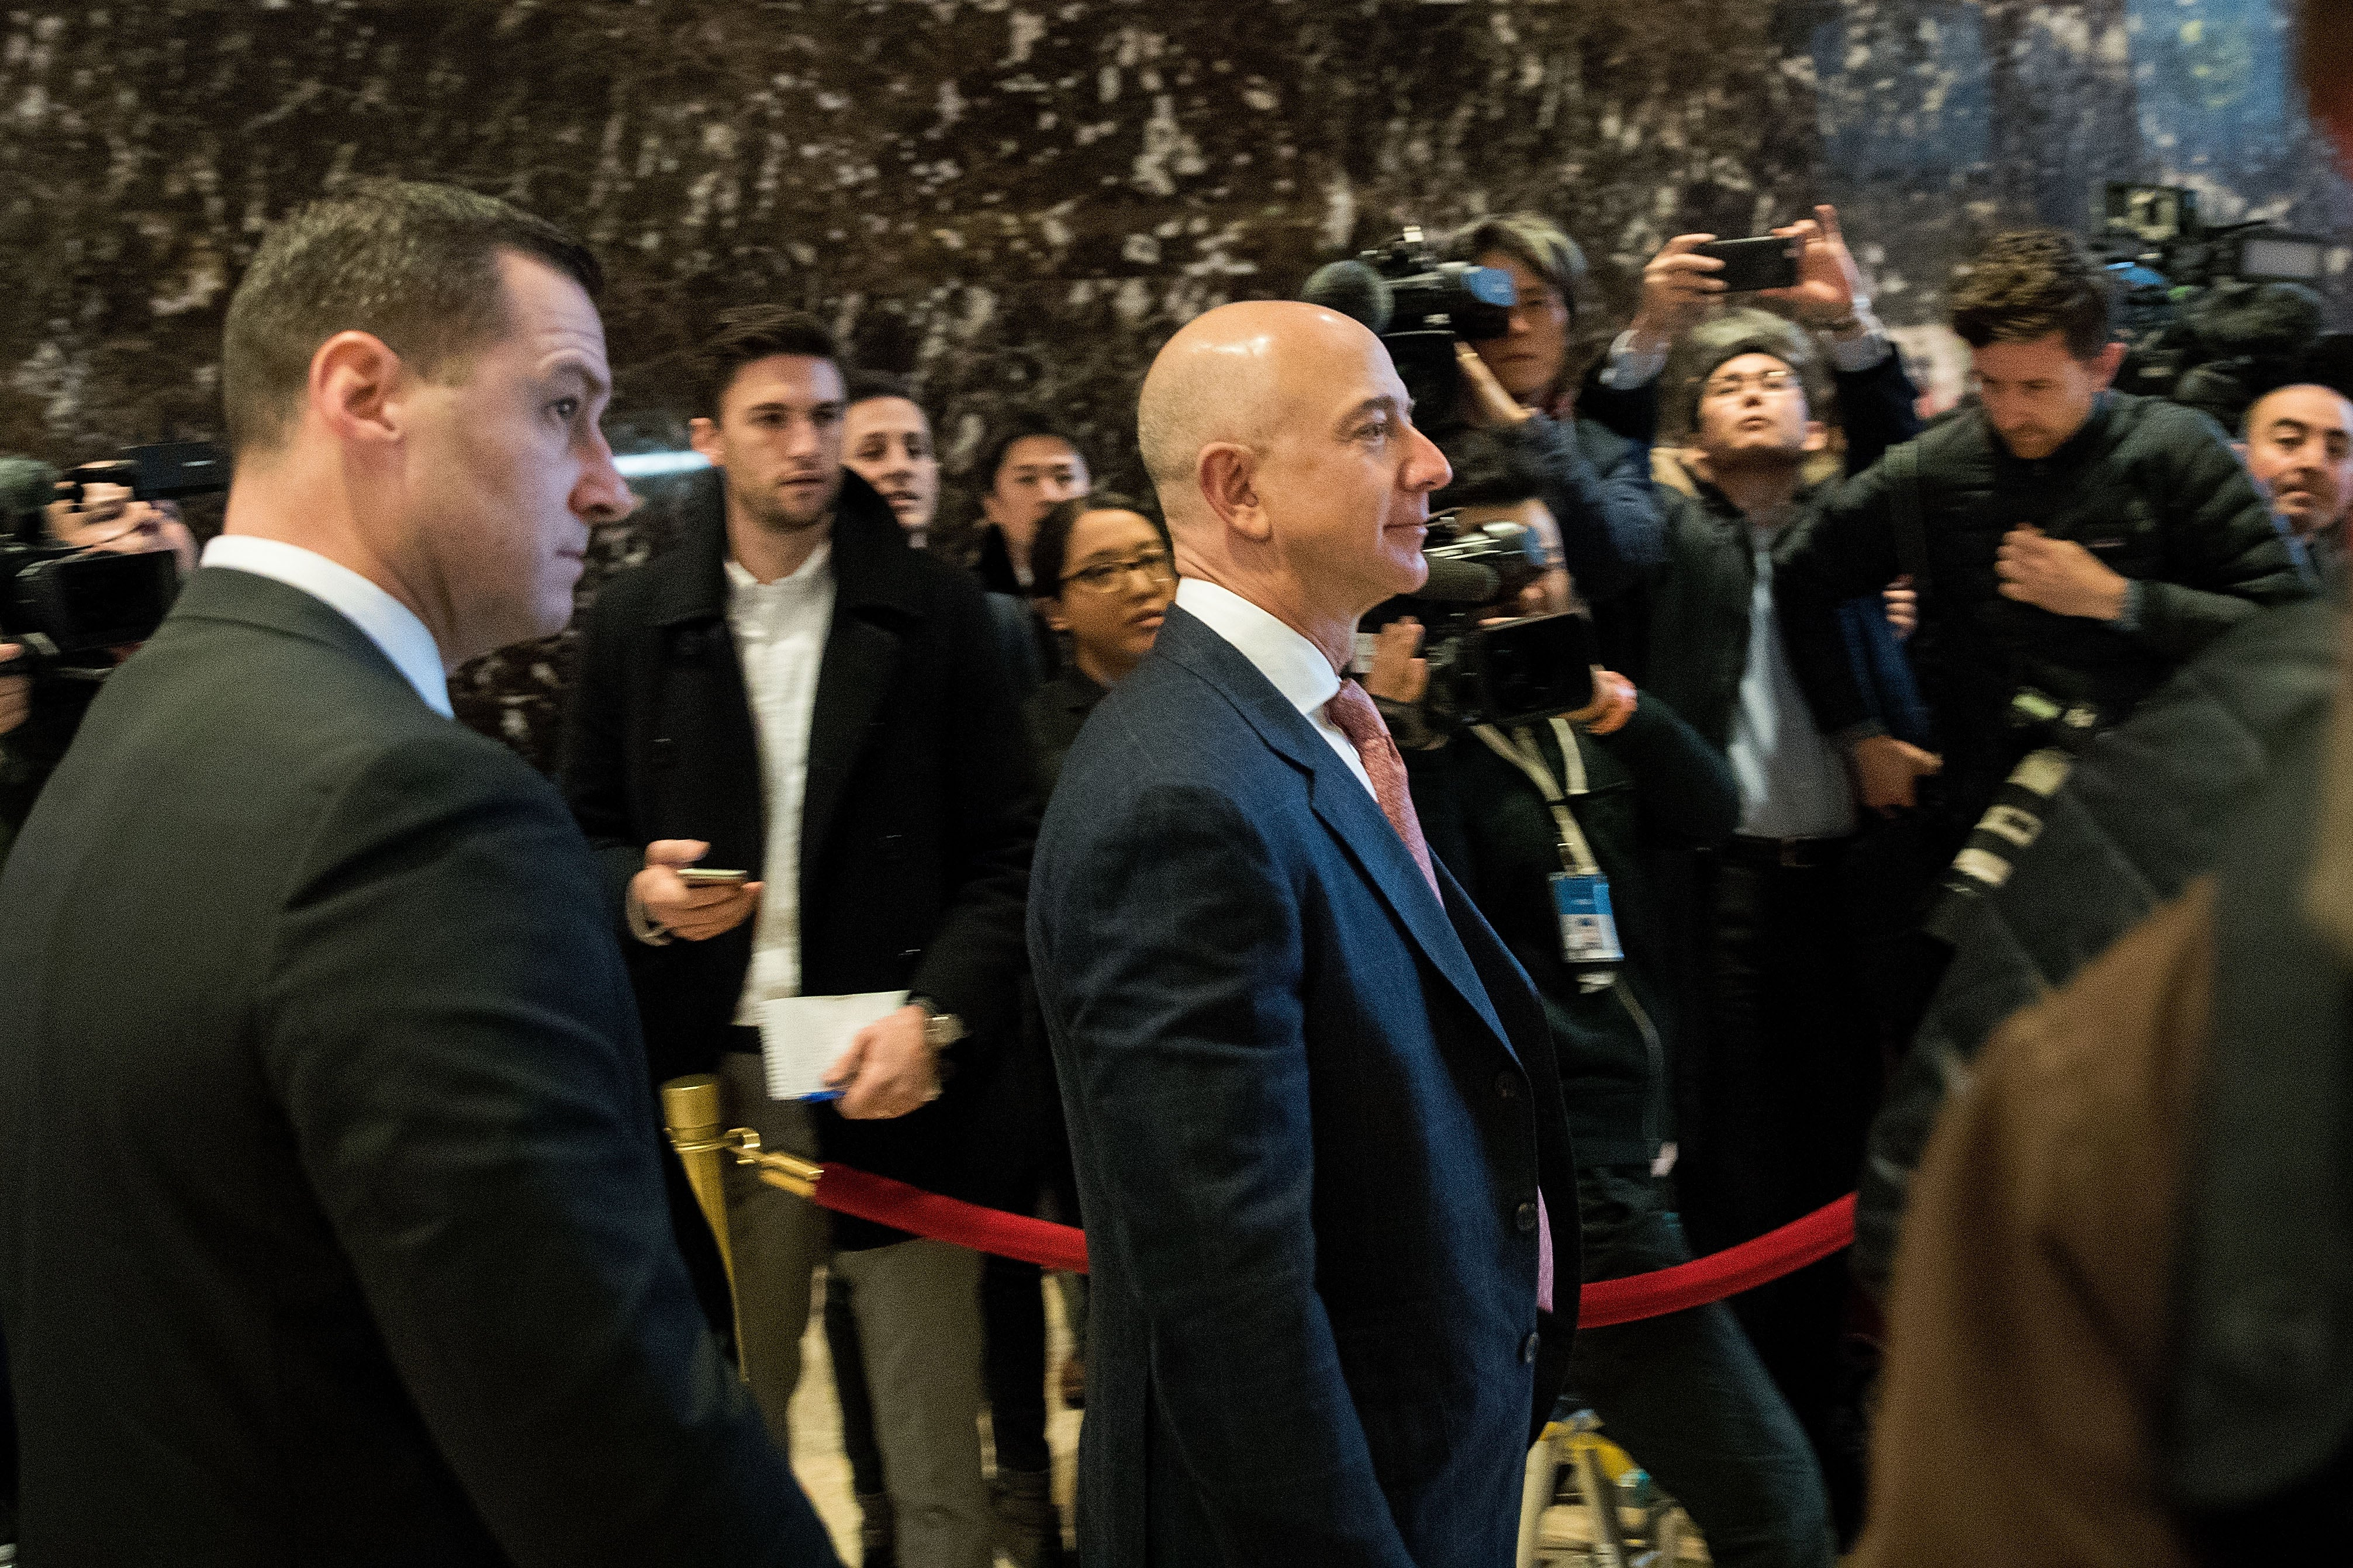 Tech Gods Arrive At Trump's Tech Summit